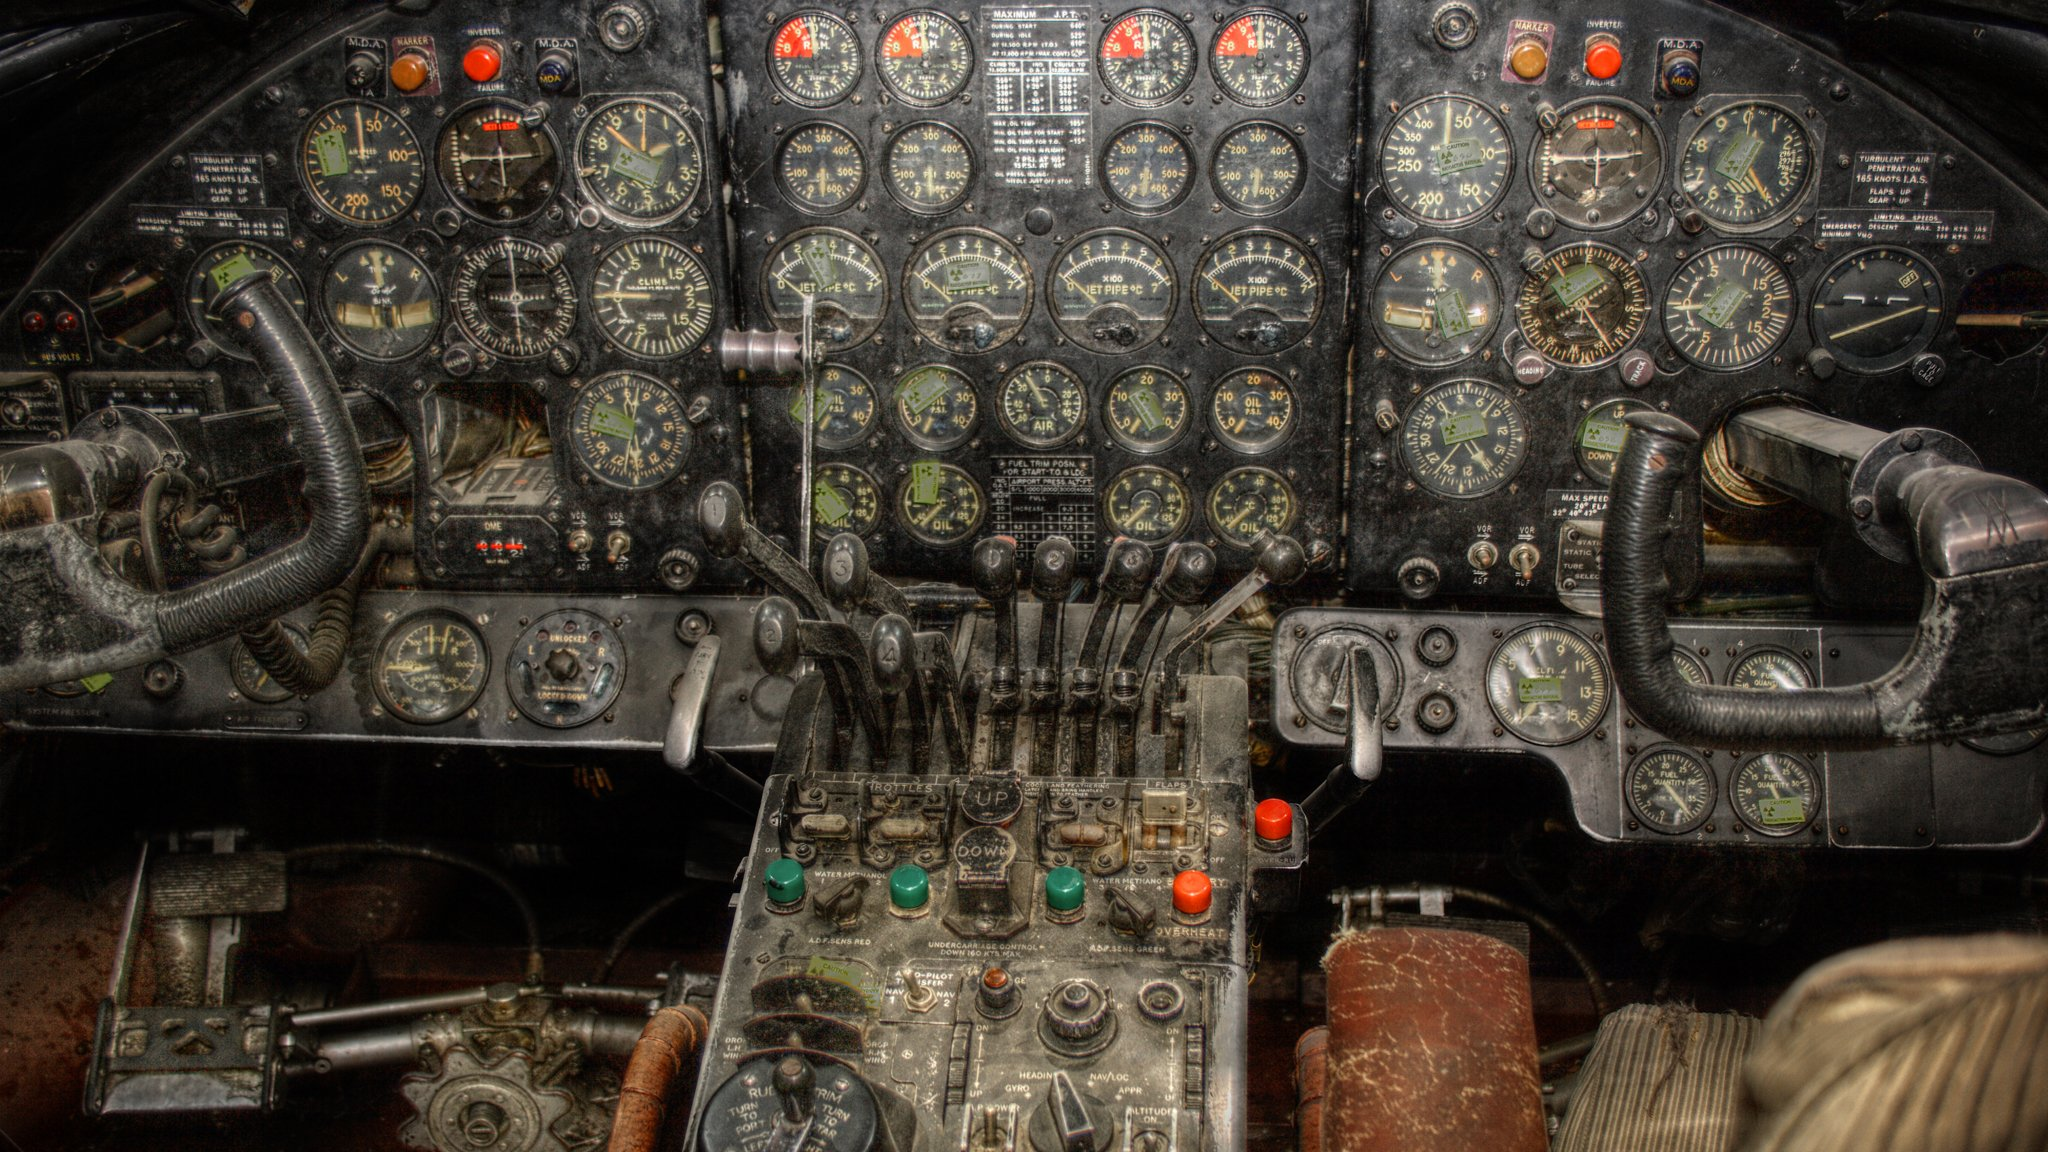 Aircraft cockpit aviation wallpaper 2048x1152 319559 for Airplane cockpit wall mural